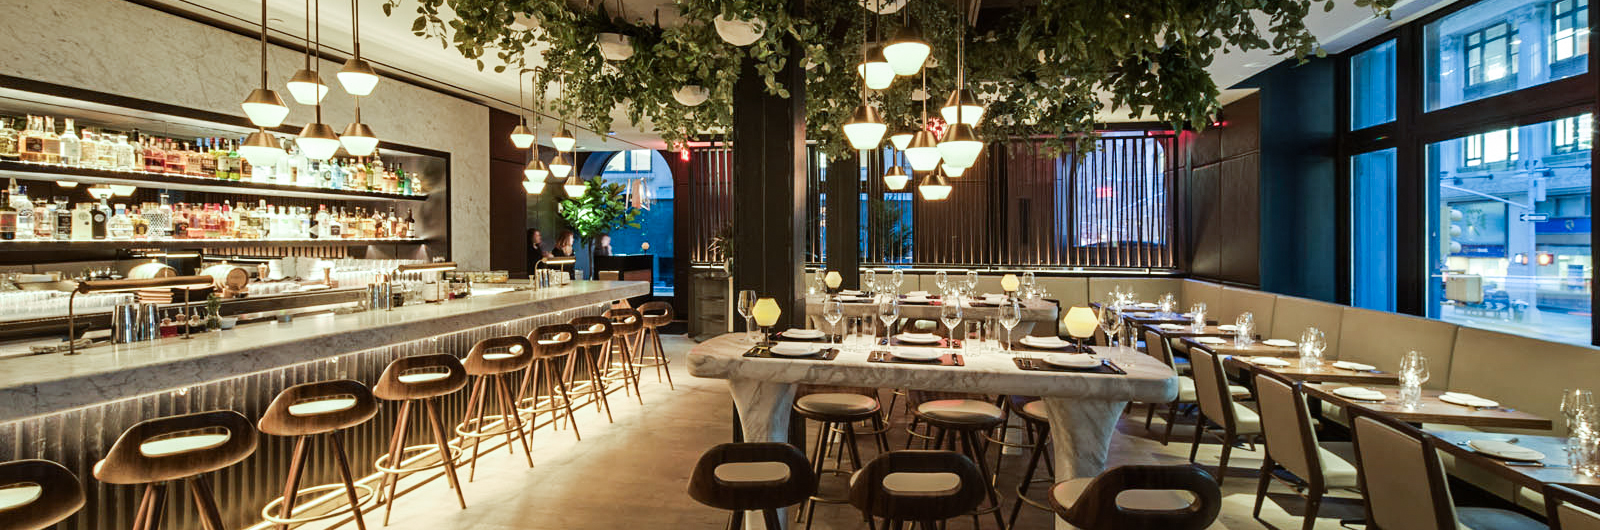 Nomad Restaurant Scarpetta New York Scarpetta S New Nomad Flagship Is Beautiful